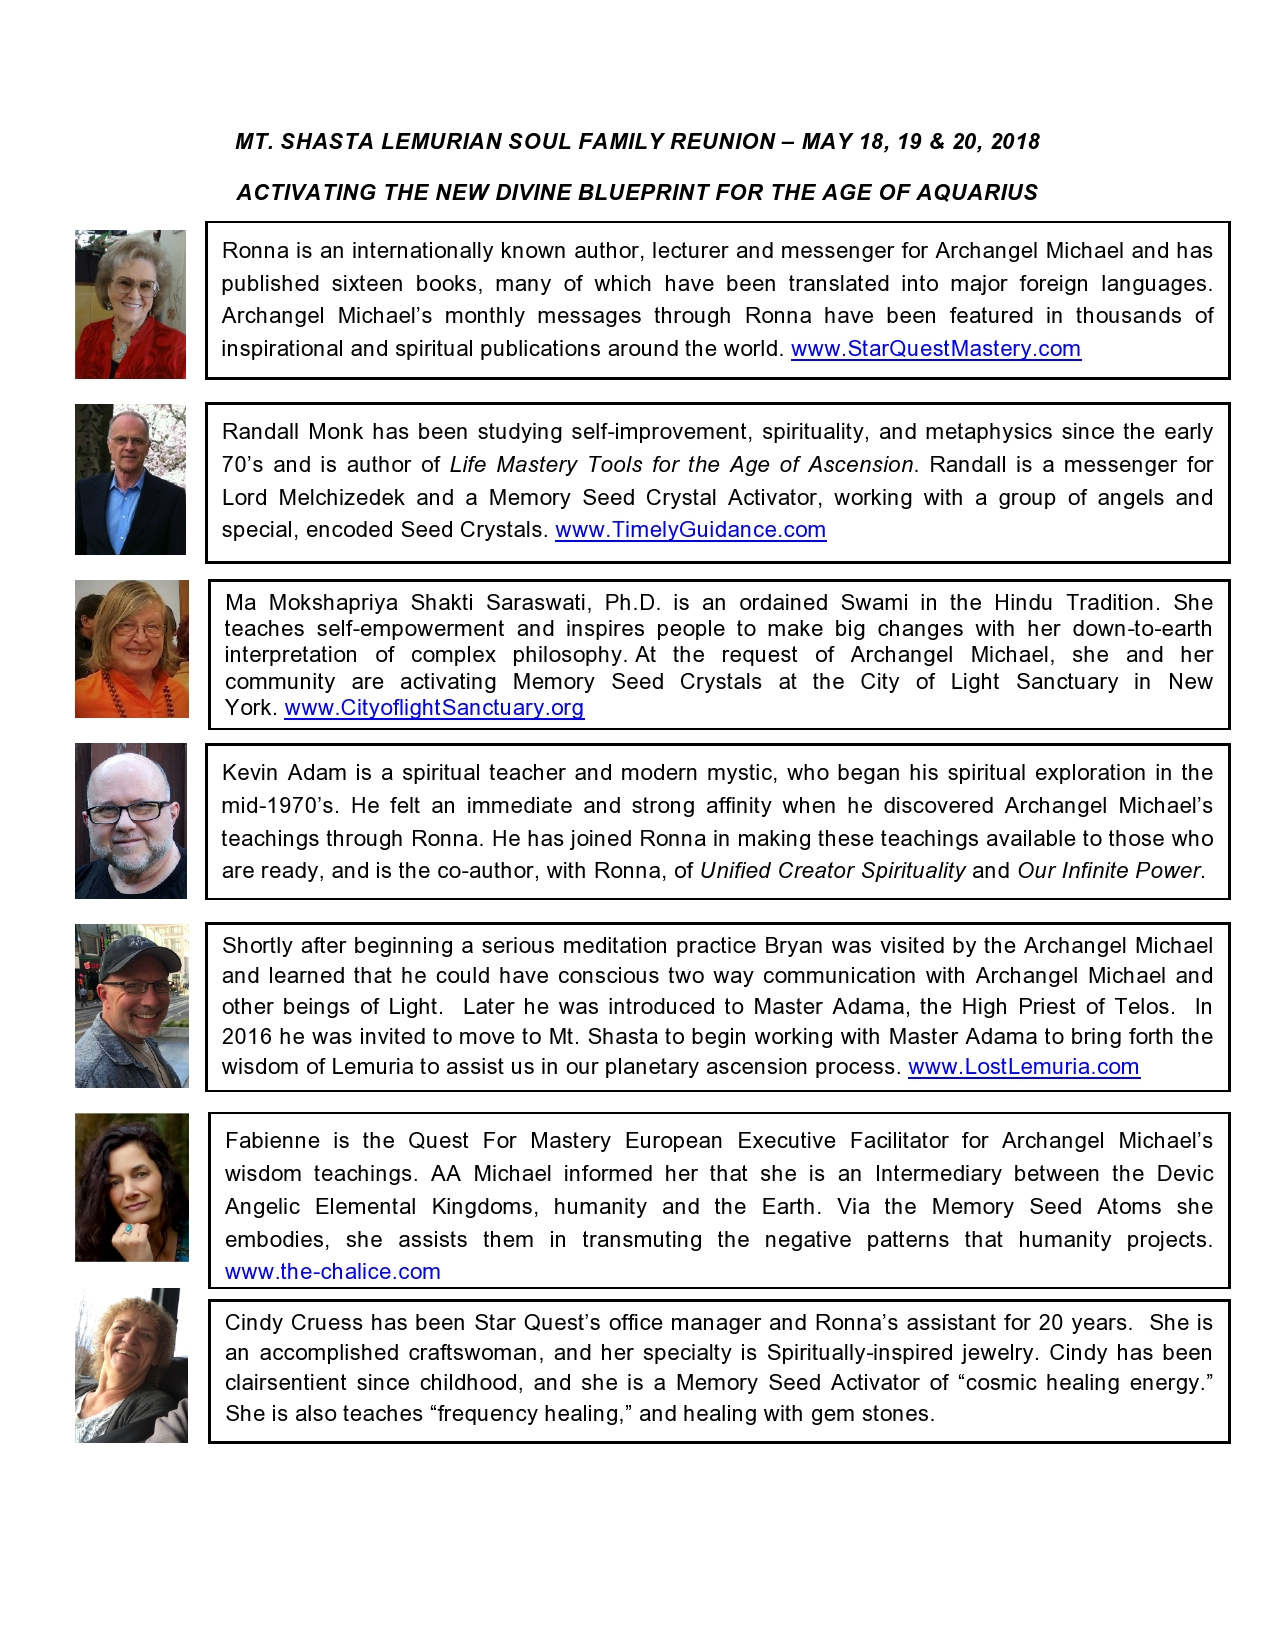 Mt Shasta Event Speakers bios - Timely Guidance